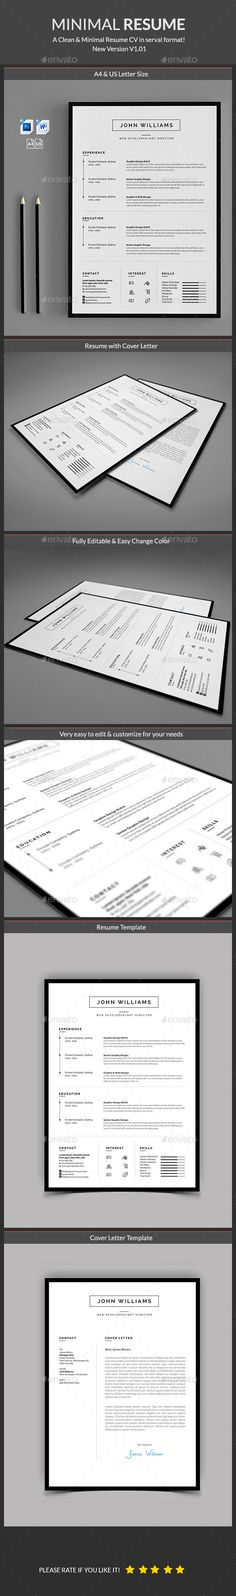 Resume Template PSD. Download here: http://graphicriver.net/item/resume/15693191?ref=ksioks